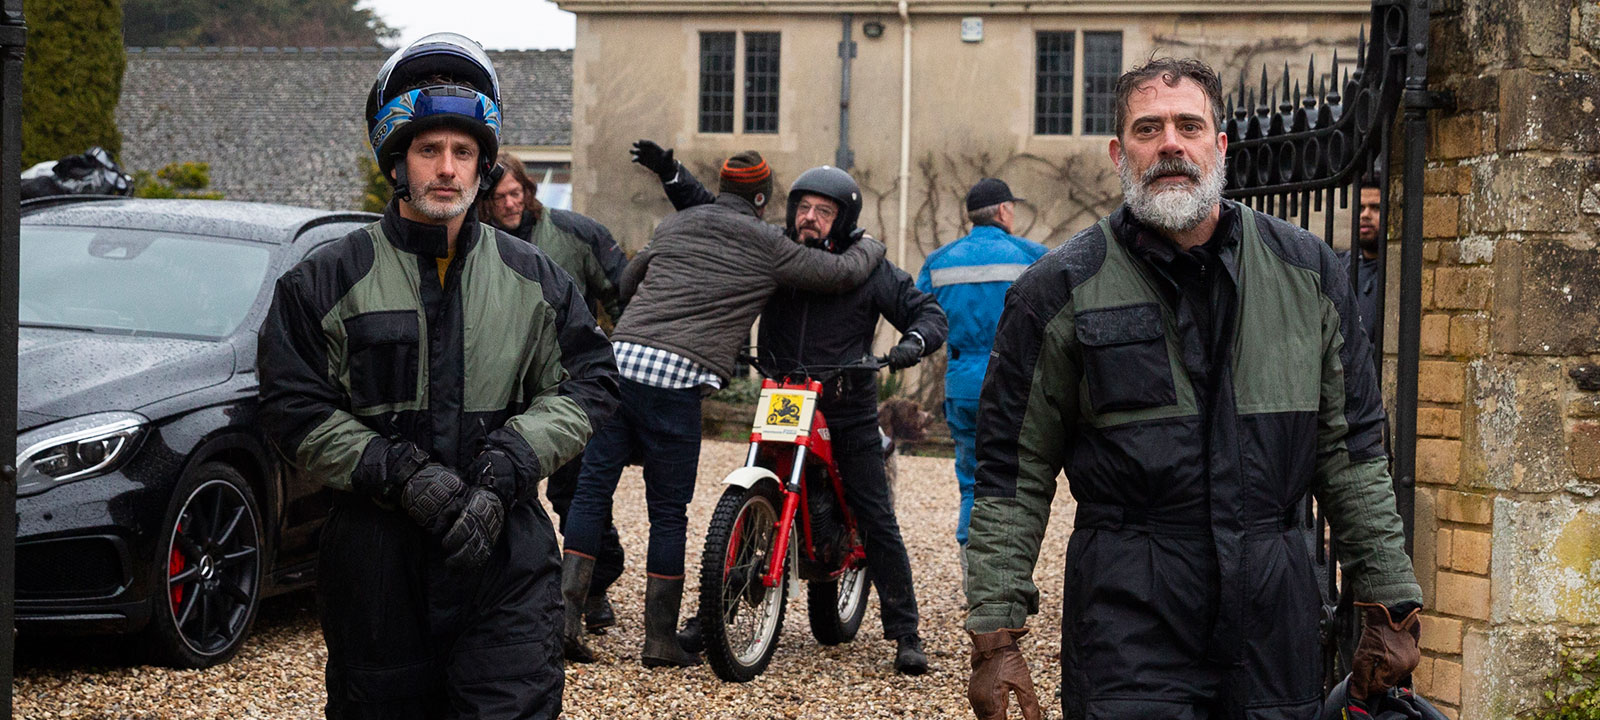 ride-with-norman-reedus-301-andrew-lincoln-jeffrey-dean-morgan-800×600